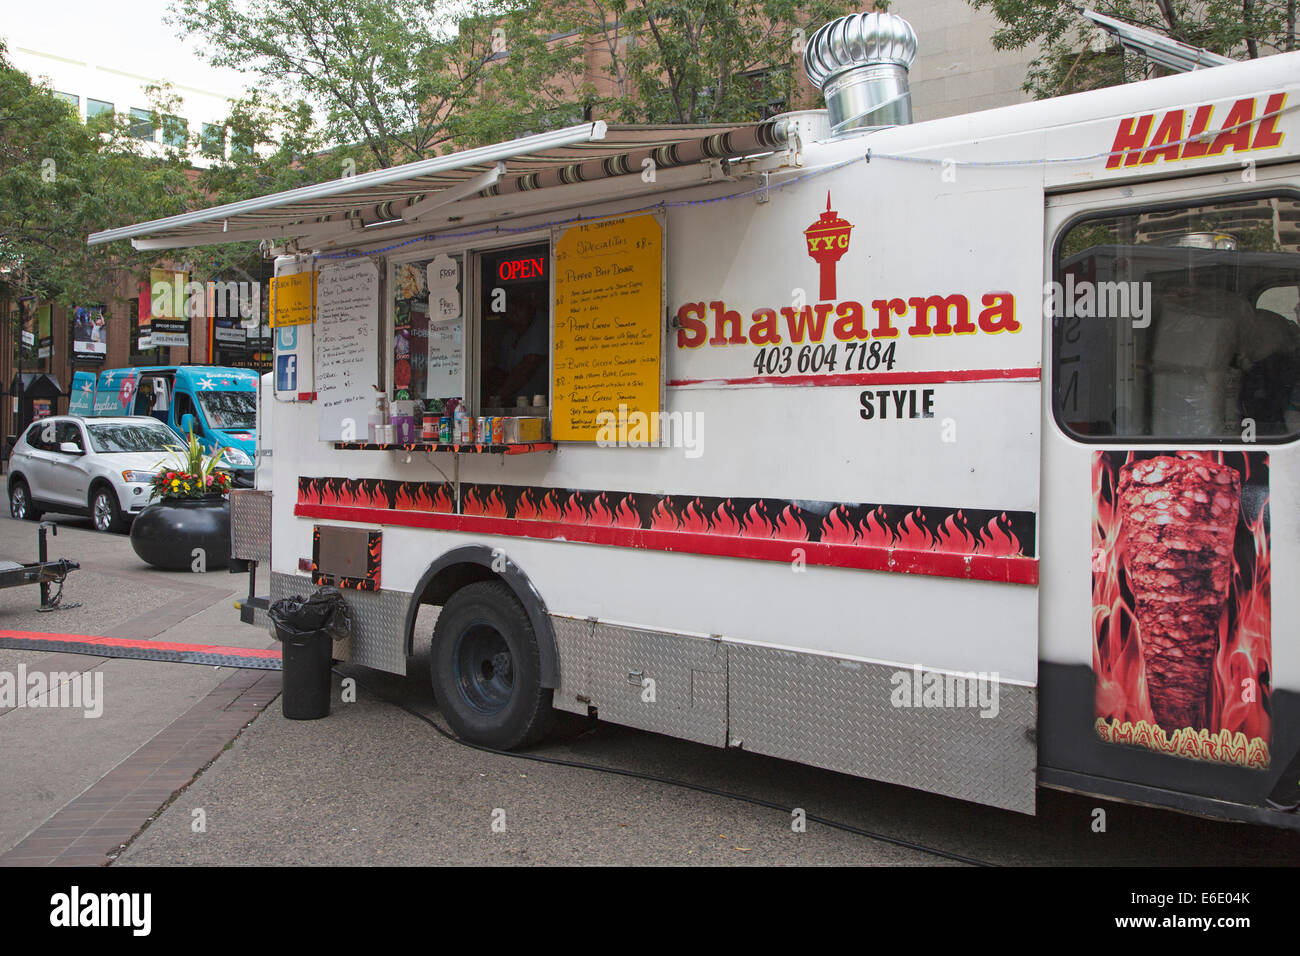 Shawarma Food Truck At Calgary Arab Festival In Olympic Plaza